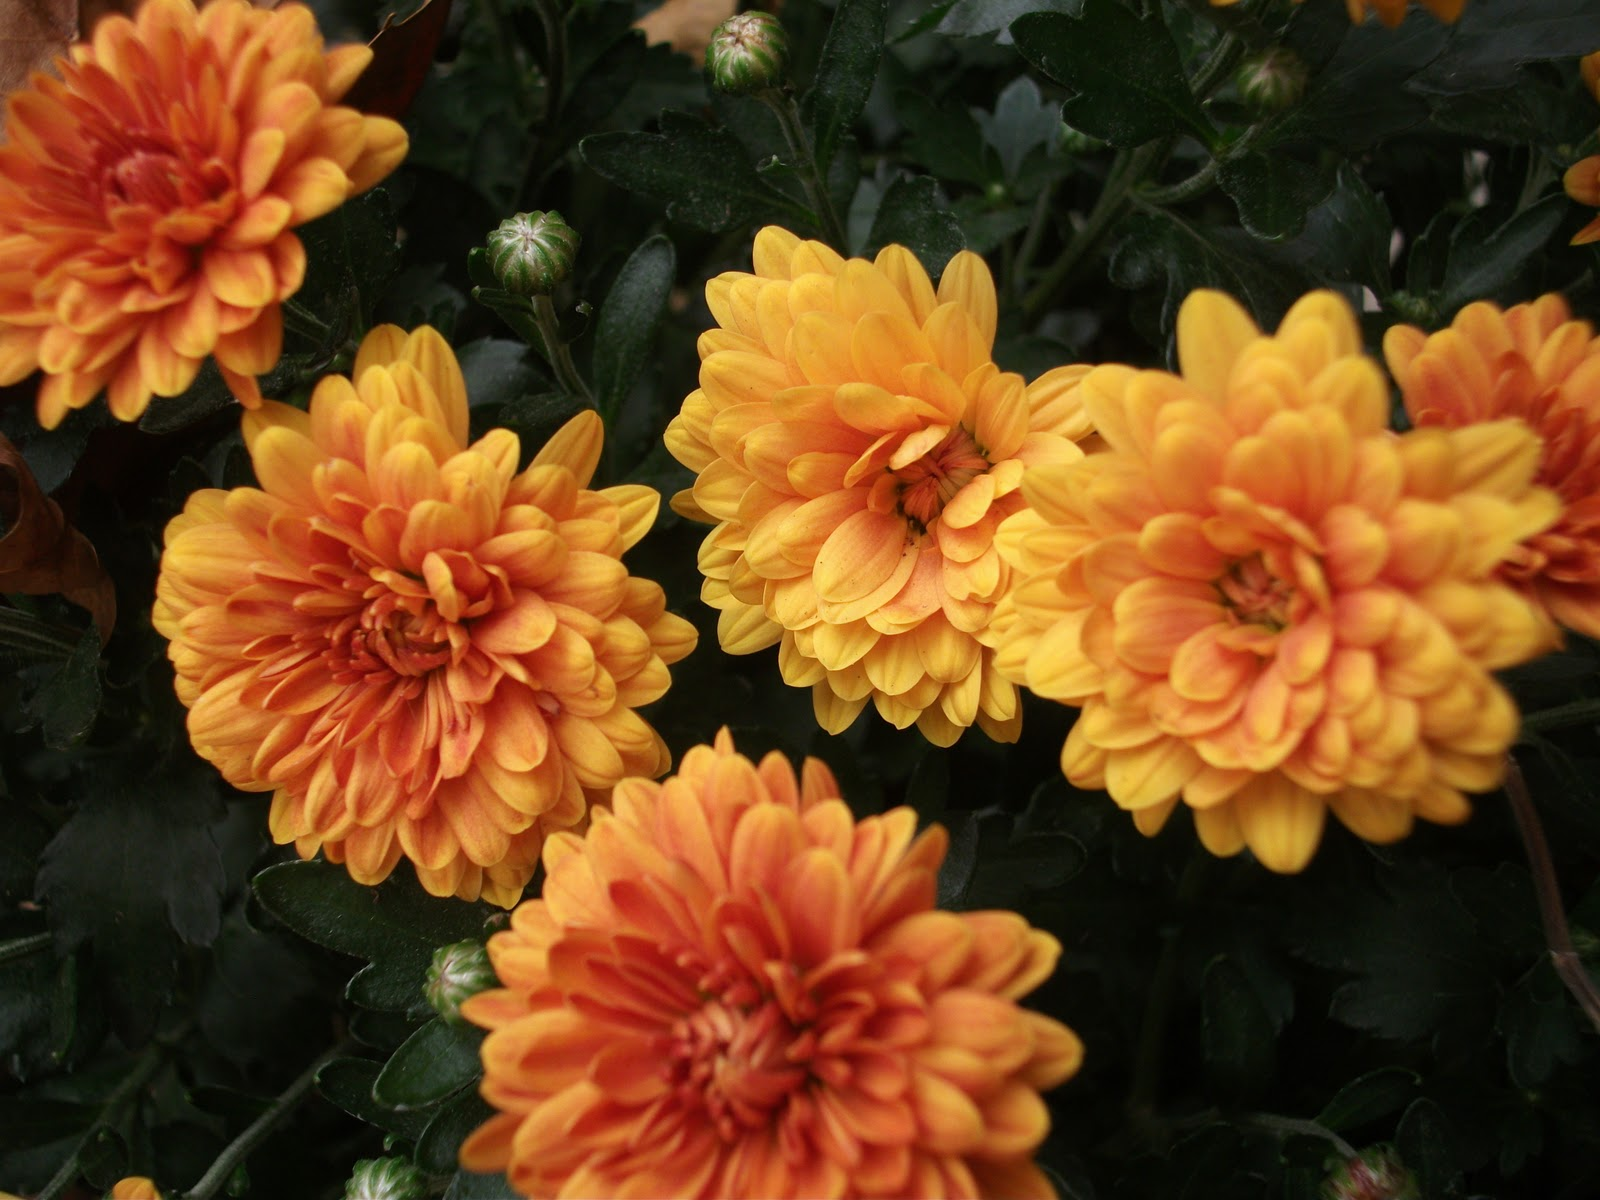 How To Keep Flowers Fresh Overnight Over The Backyard Fence Autumn Musings